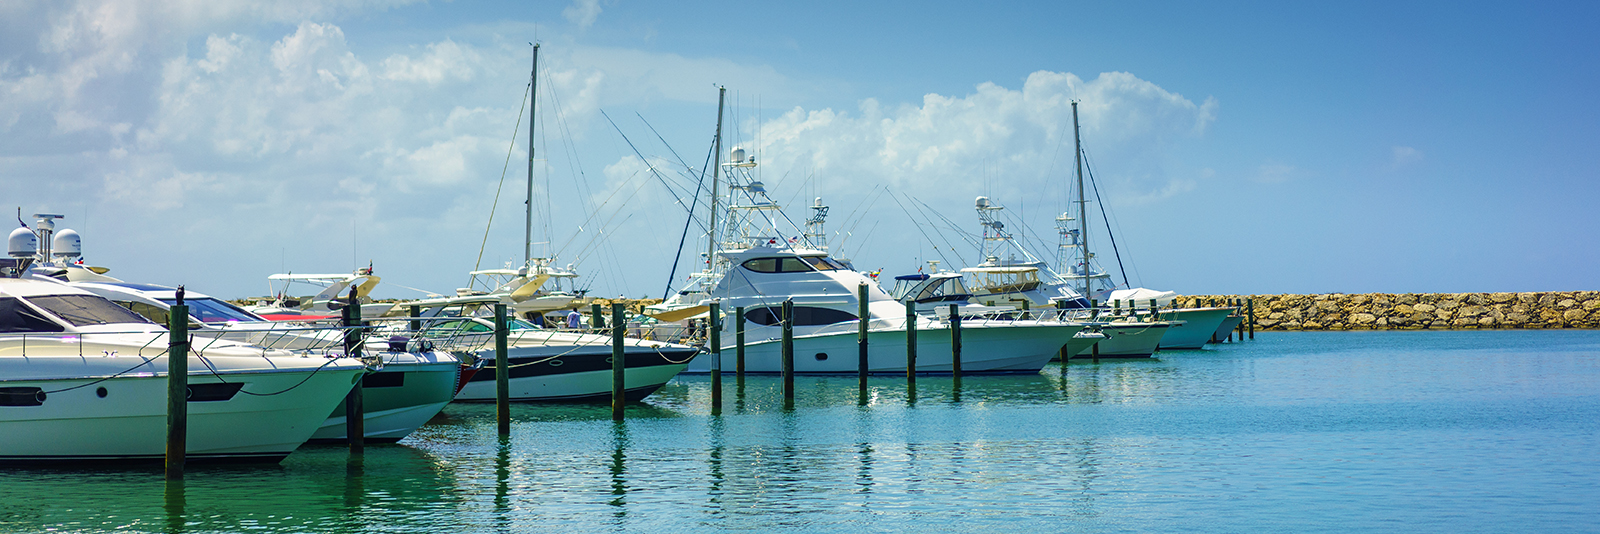 yacht insurance coverage and recreational boats